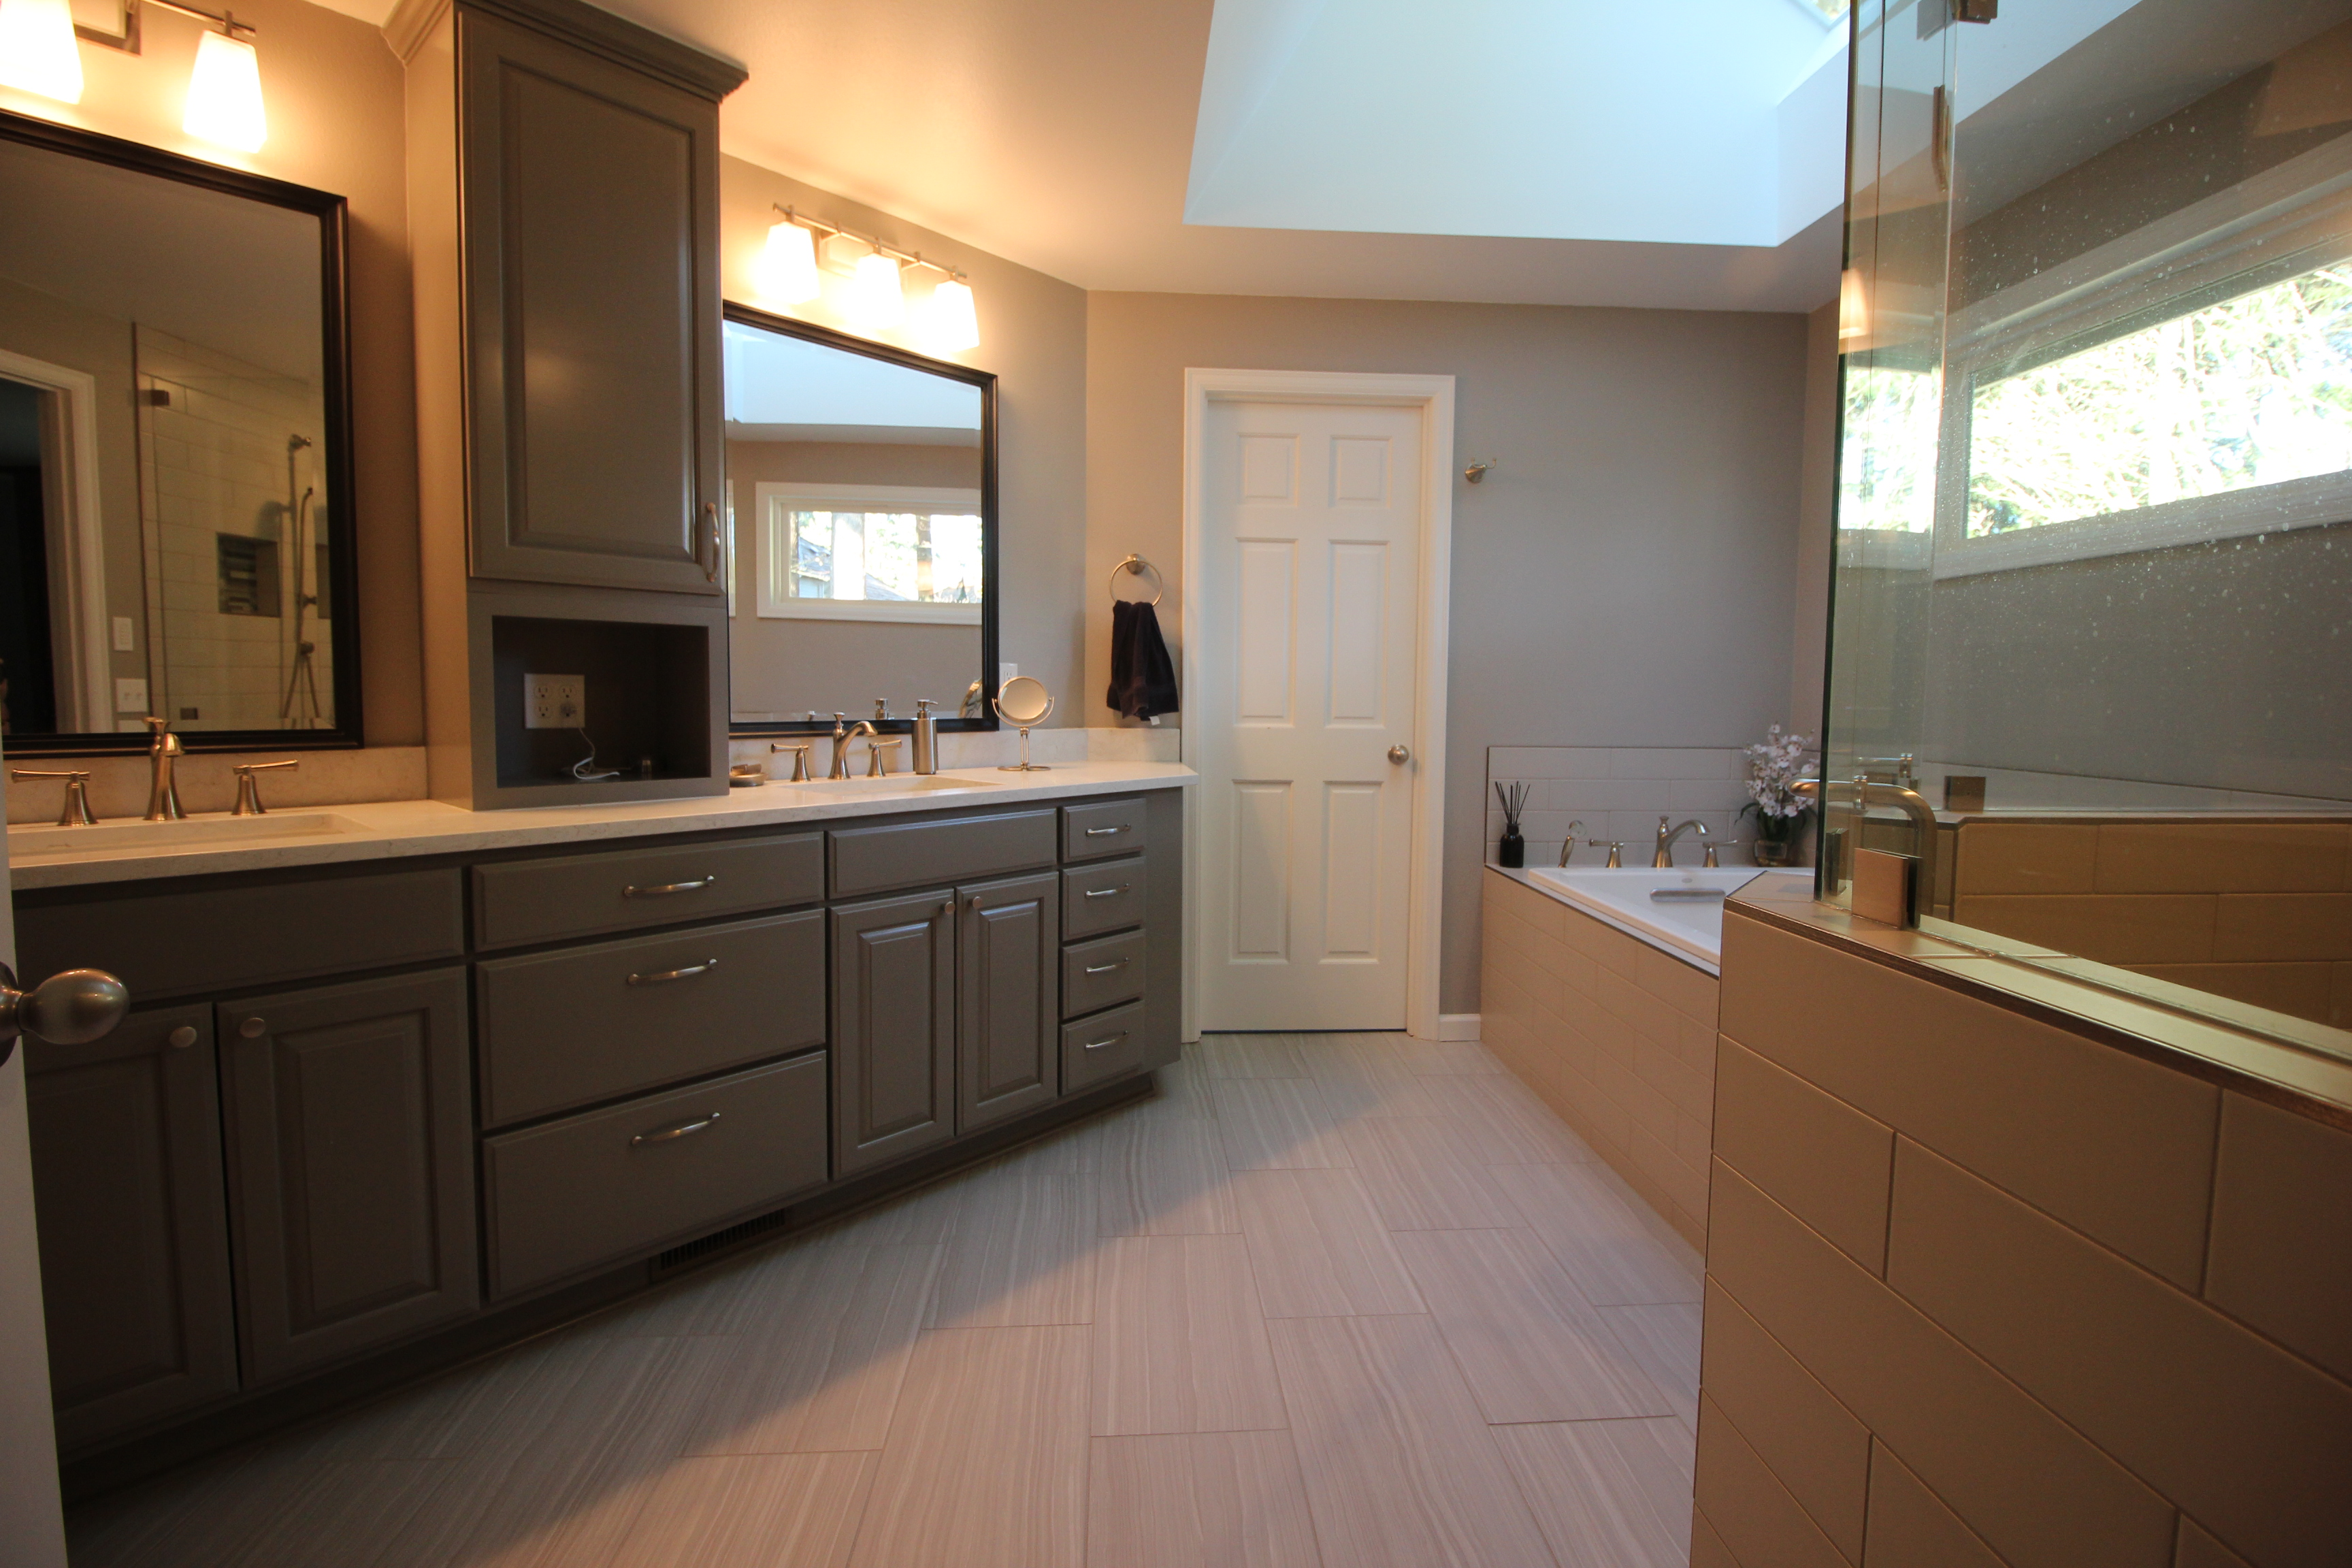 Canyon creek cabinets home run solutions for Canyon creek kitchen cabinets